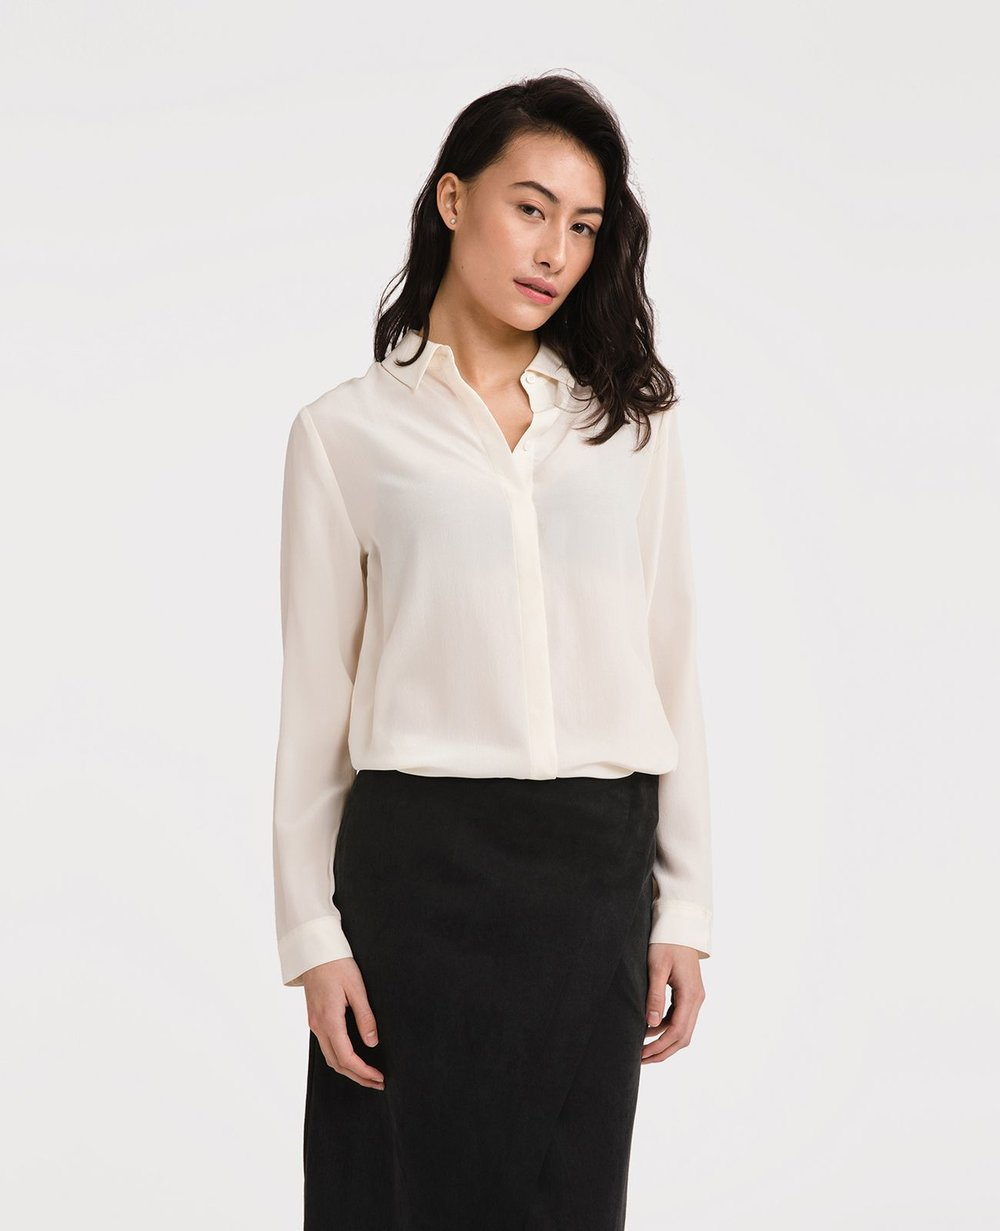 Grana - Chinese Silk Long Sleeve Shirt $89.00